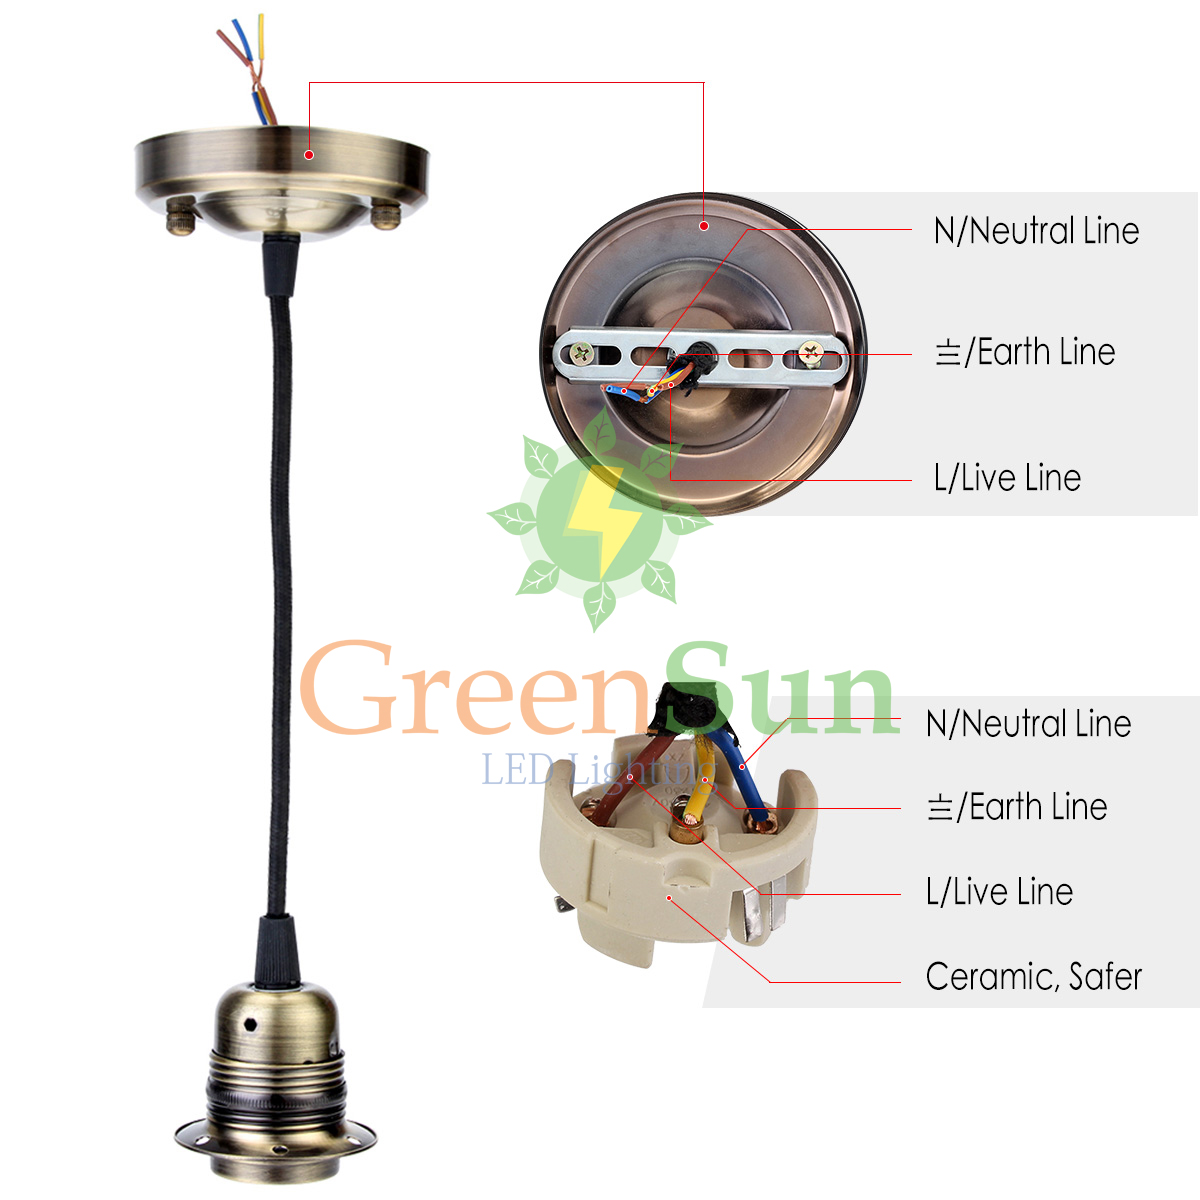 E27 Retro Lamp Holder Pendant Light Cord Set Ceiling Socket Wire That Is In The From Switch Now To Rose Base With 135m Cable Bases Lights Lighting On